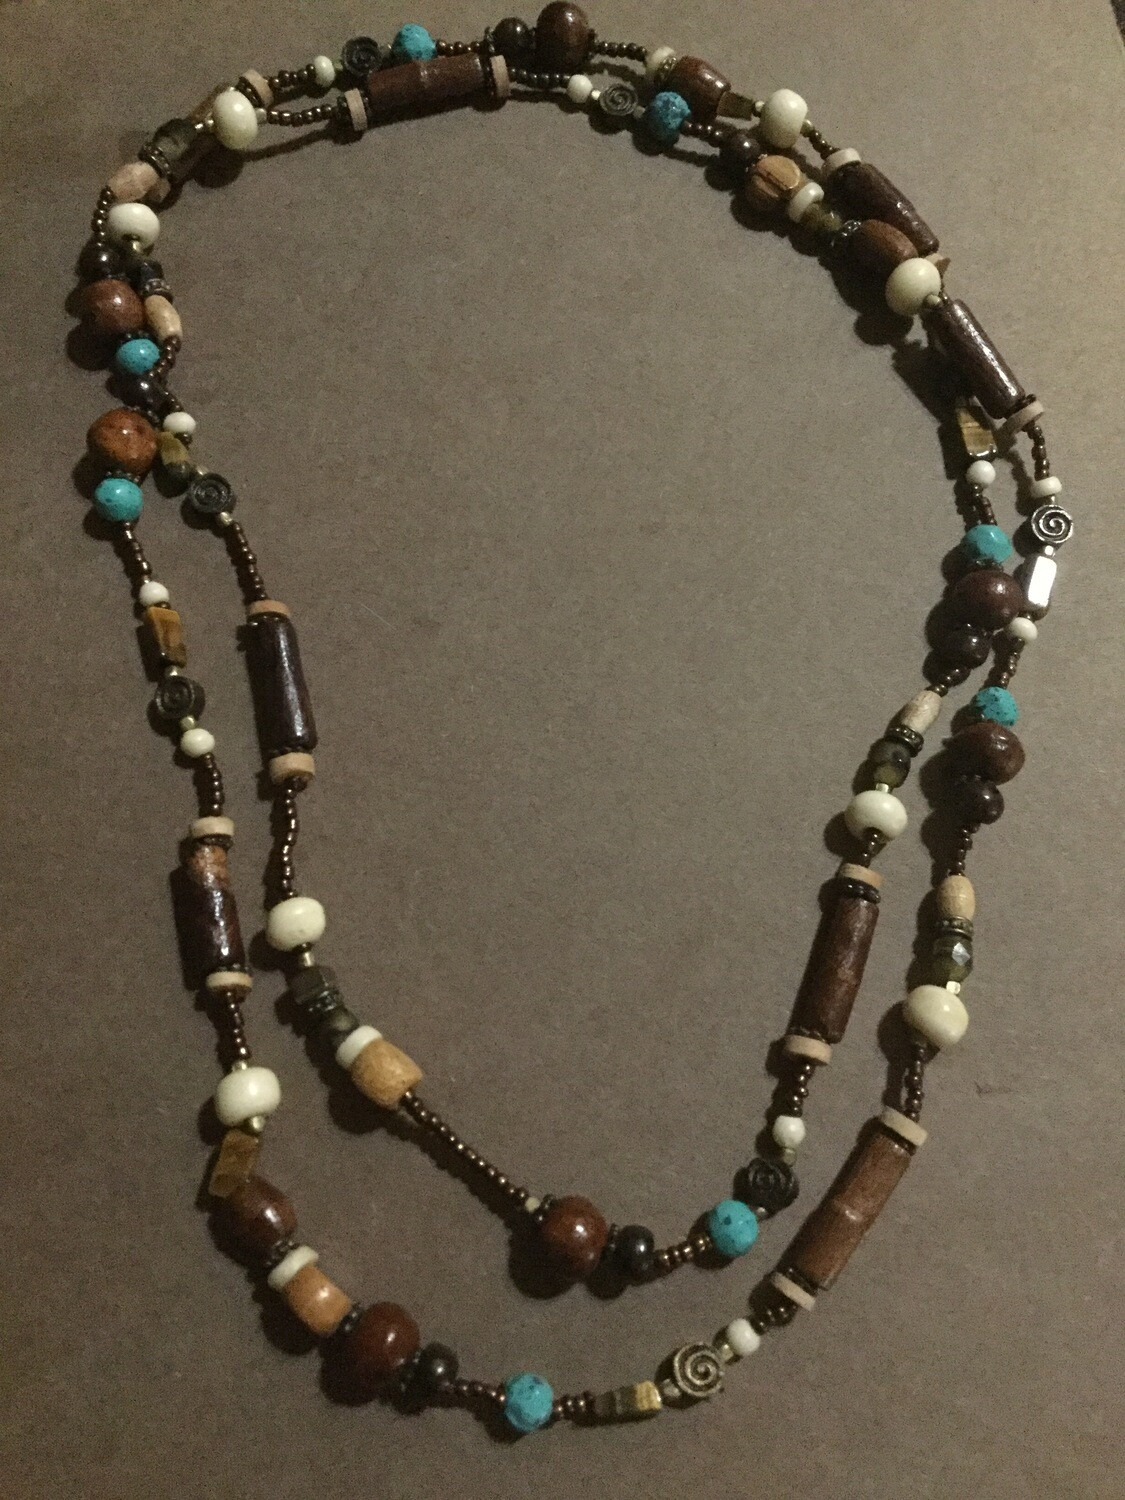 Powerful Prayer Beads, Professed, Proclaimed Blessings & Miracles to be Bestowed and Manifested